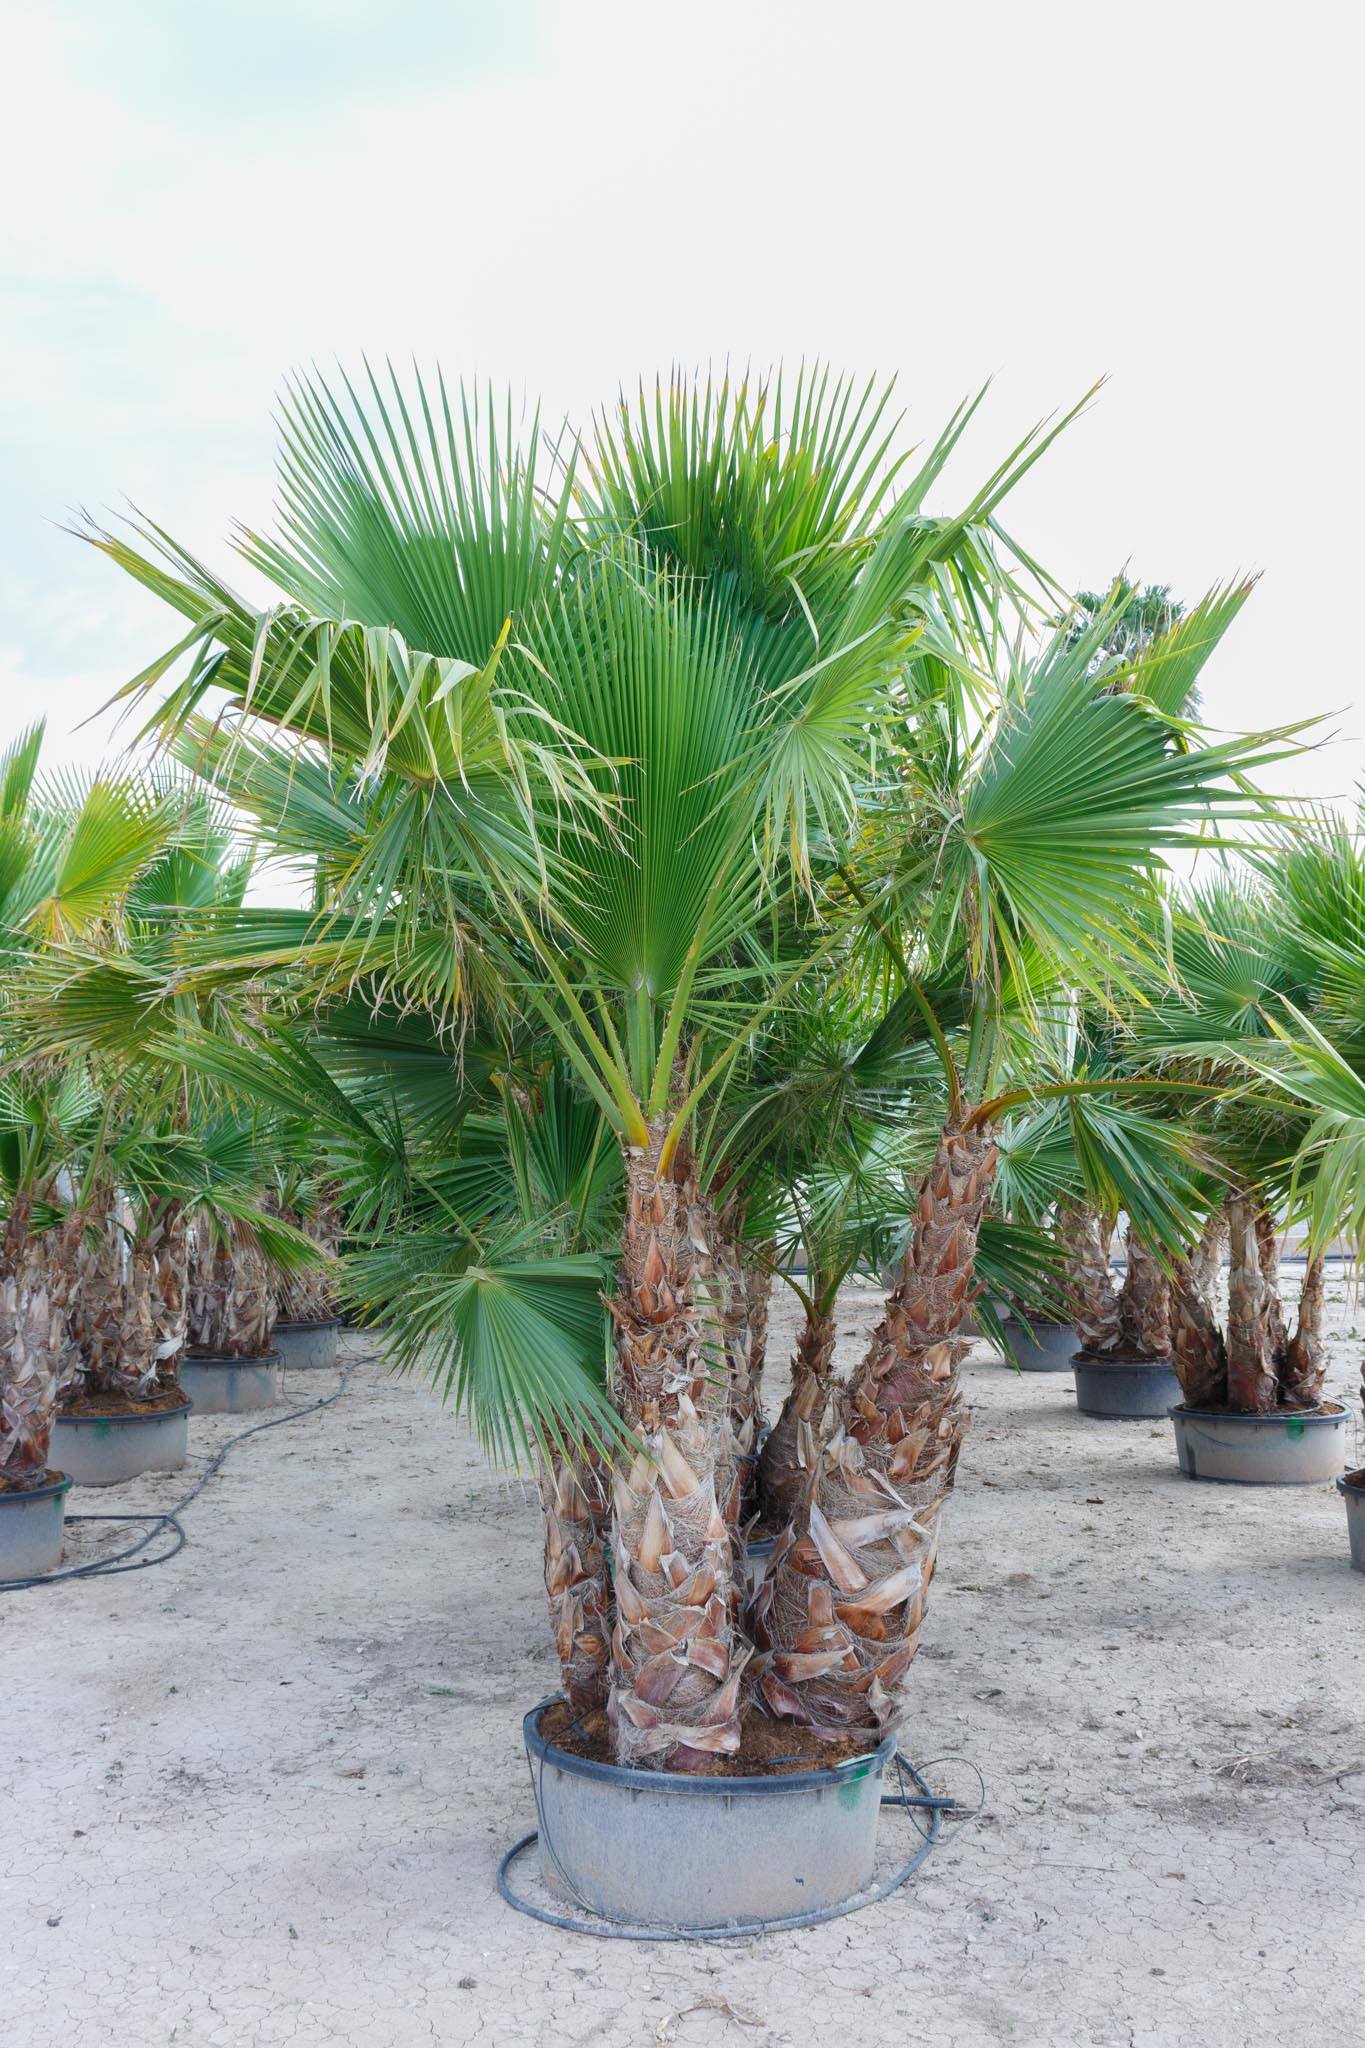 Grupo de washingtonia robusta